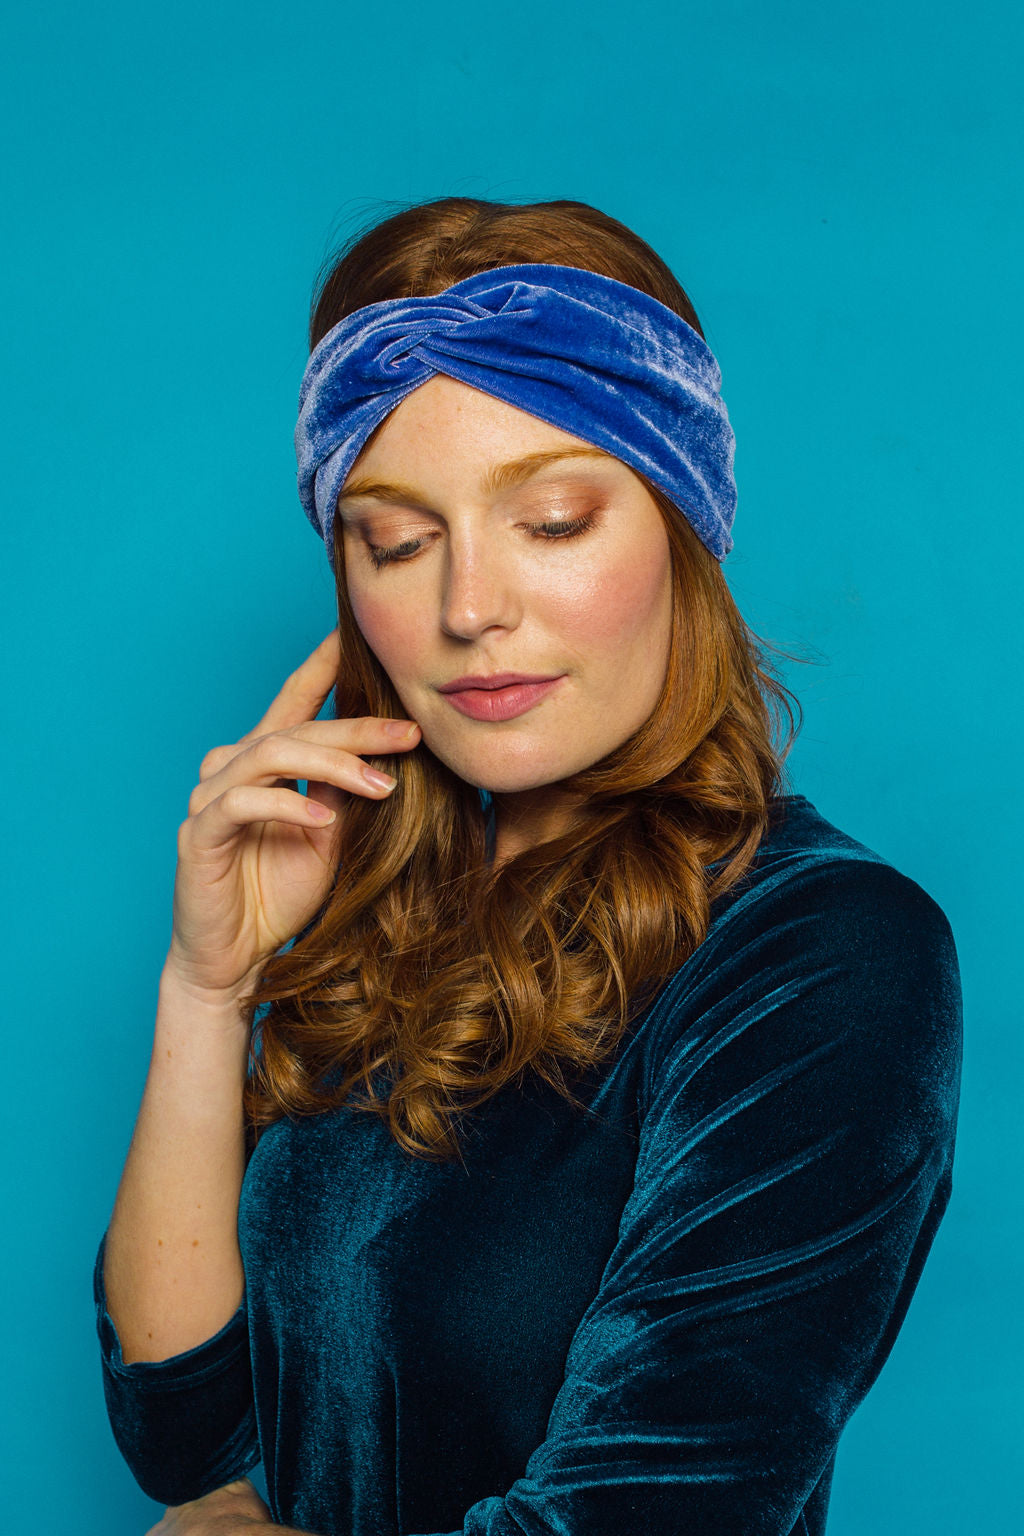 Velvet Headband in Cornflower Blue - Accessories - Megan Crook